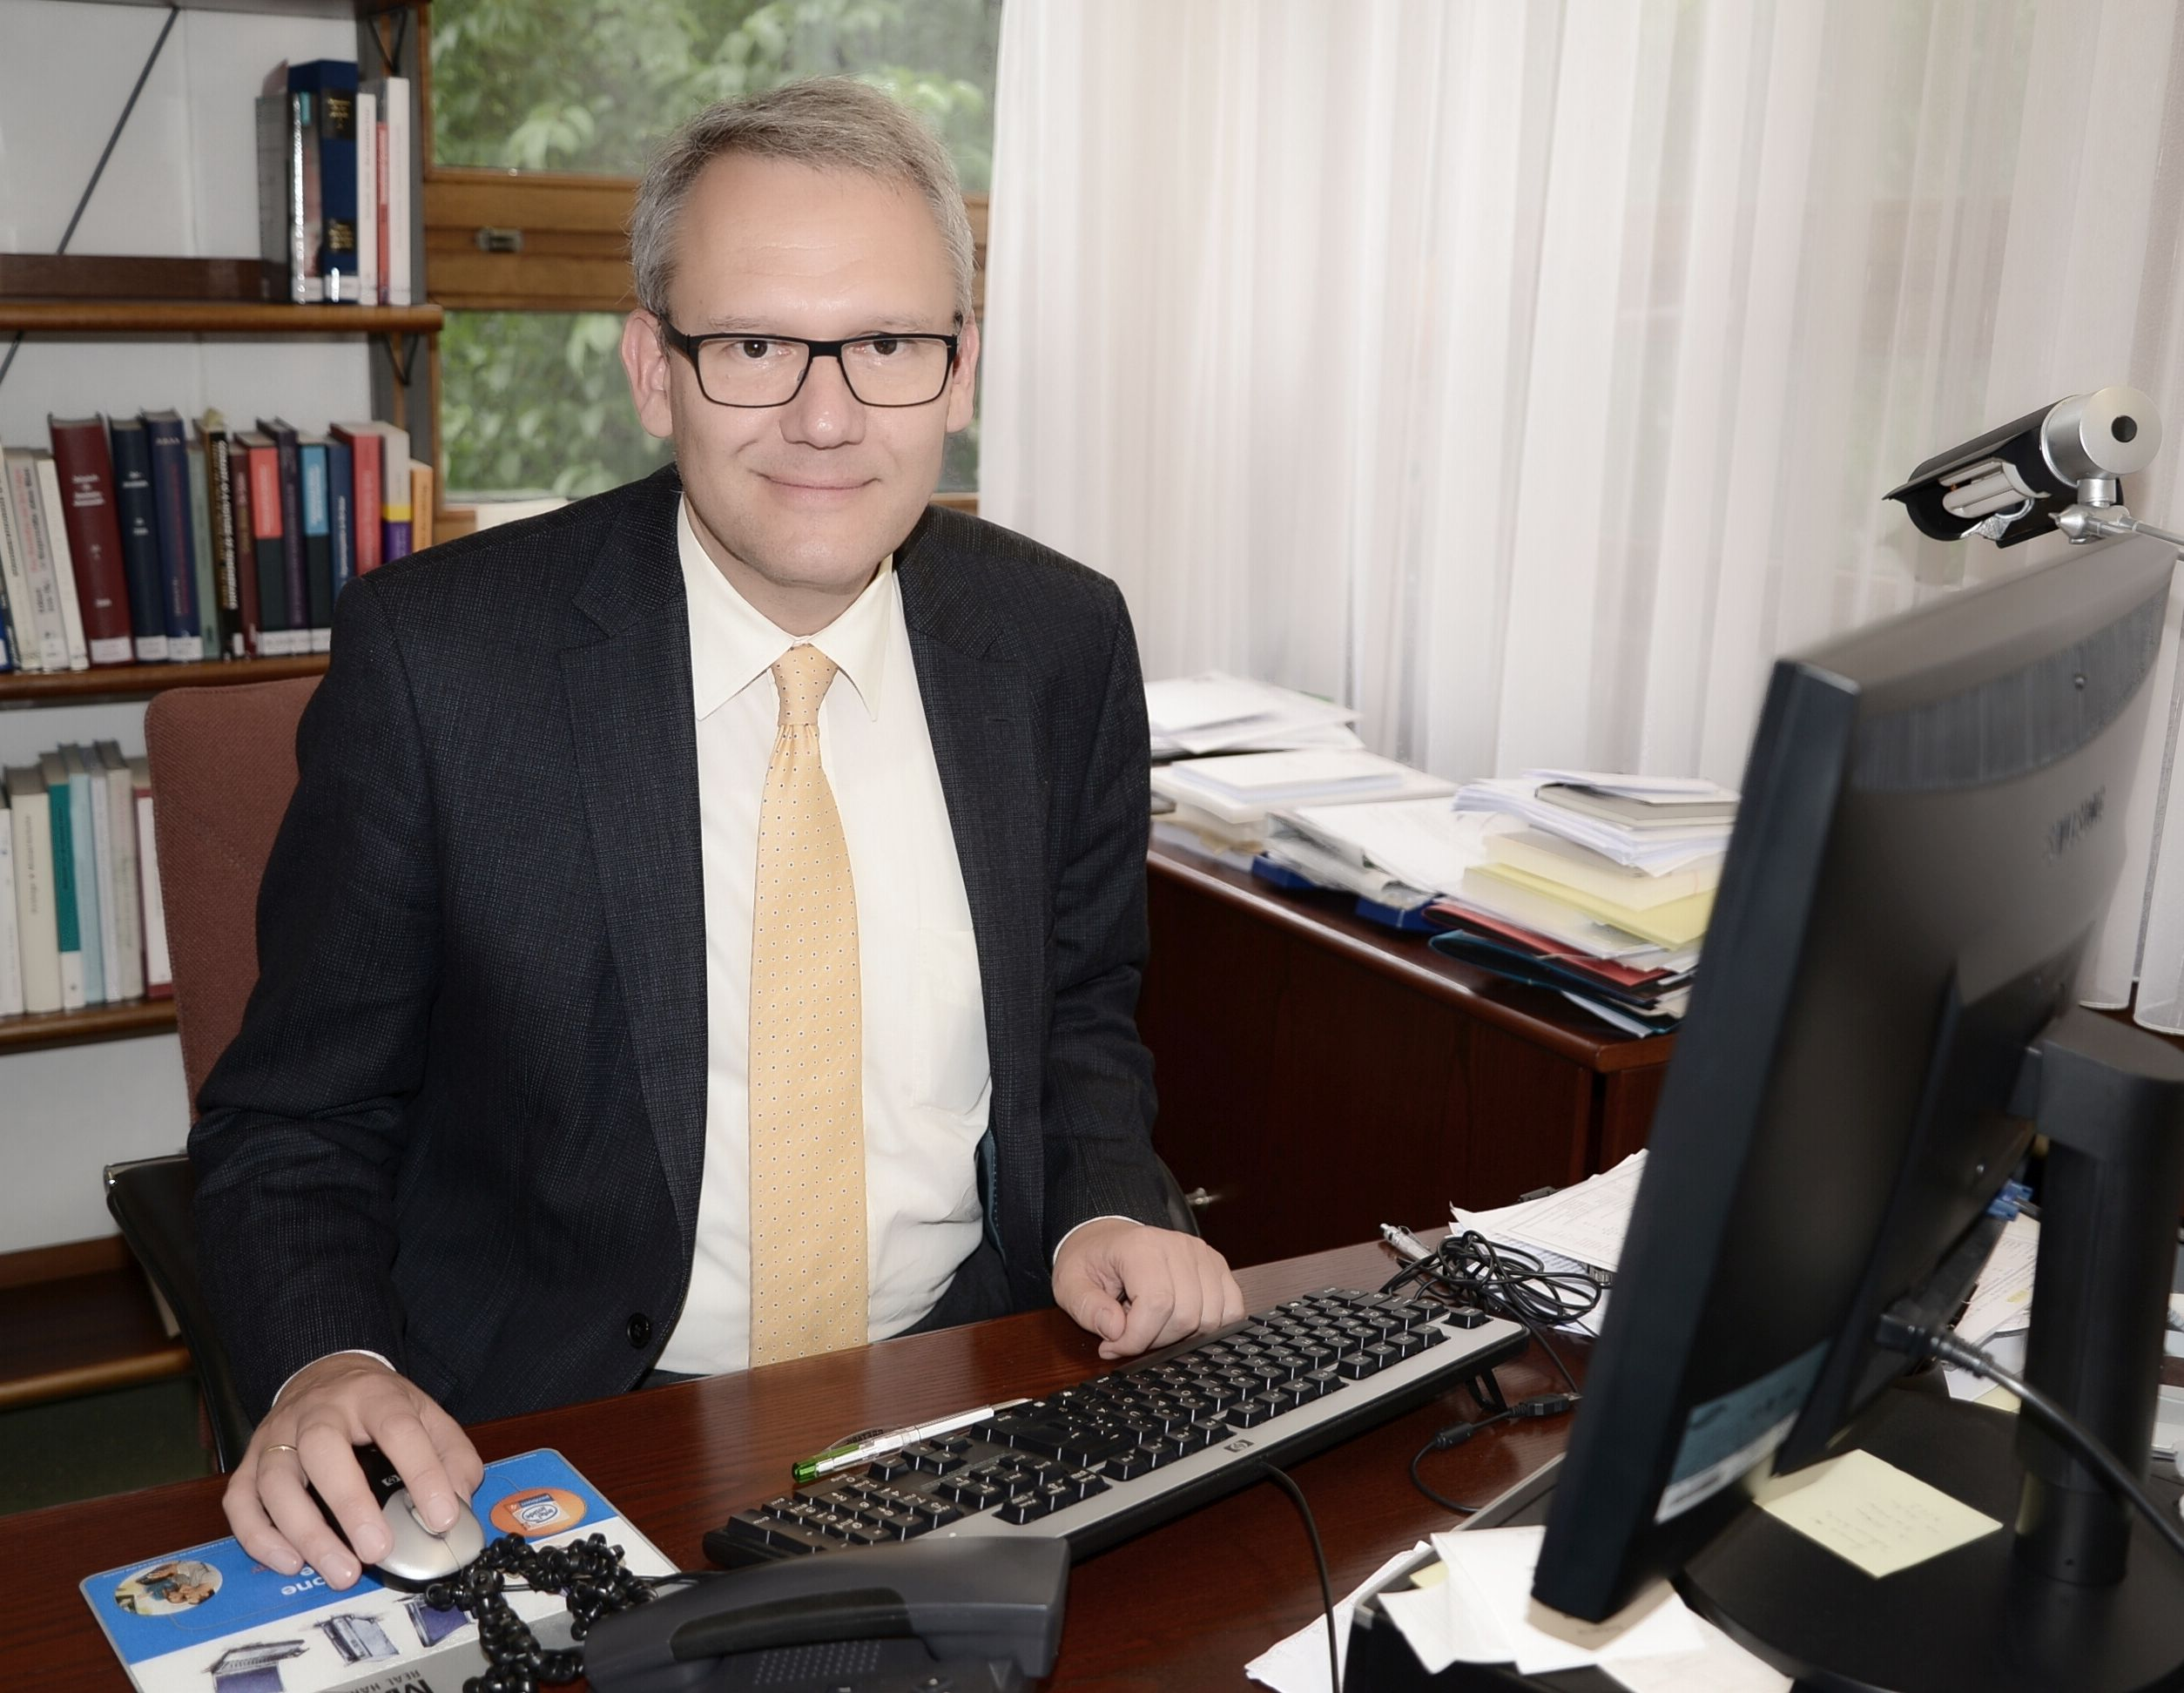 Foto Prof. Dr. Andreas Wirsching